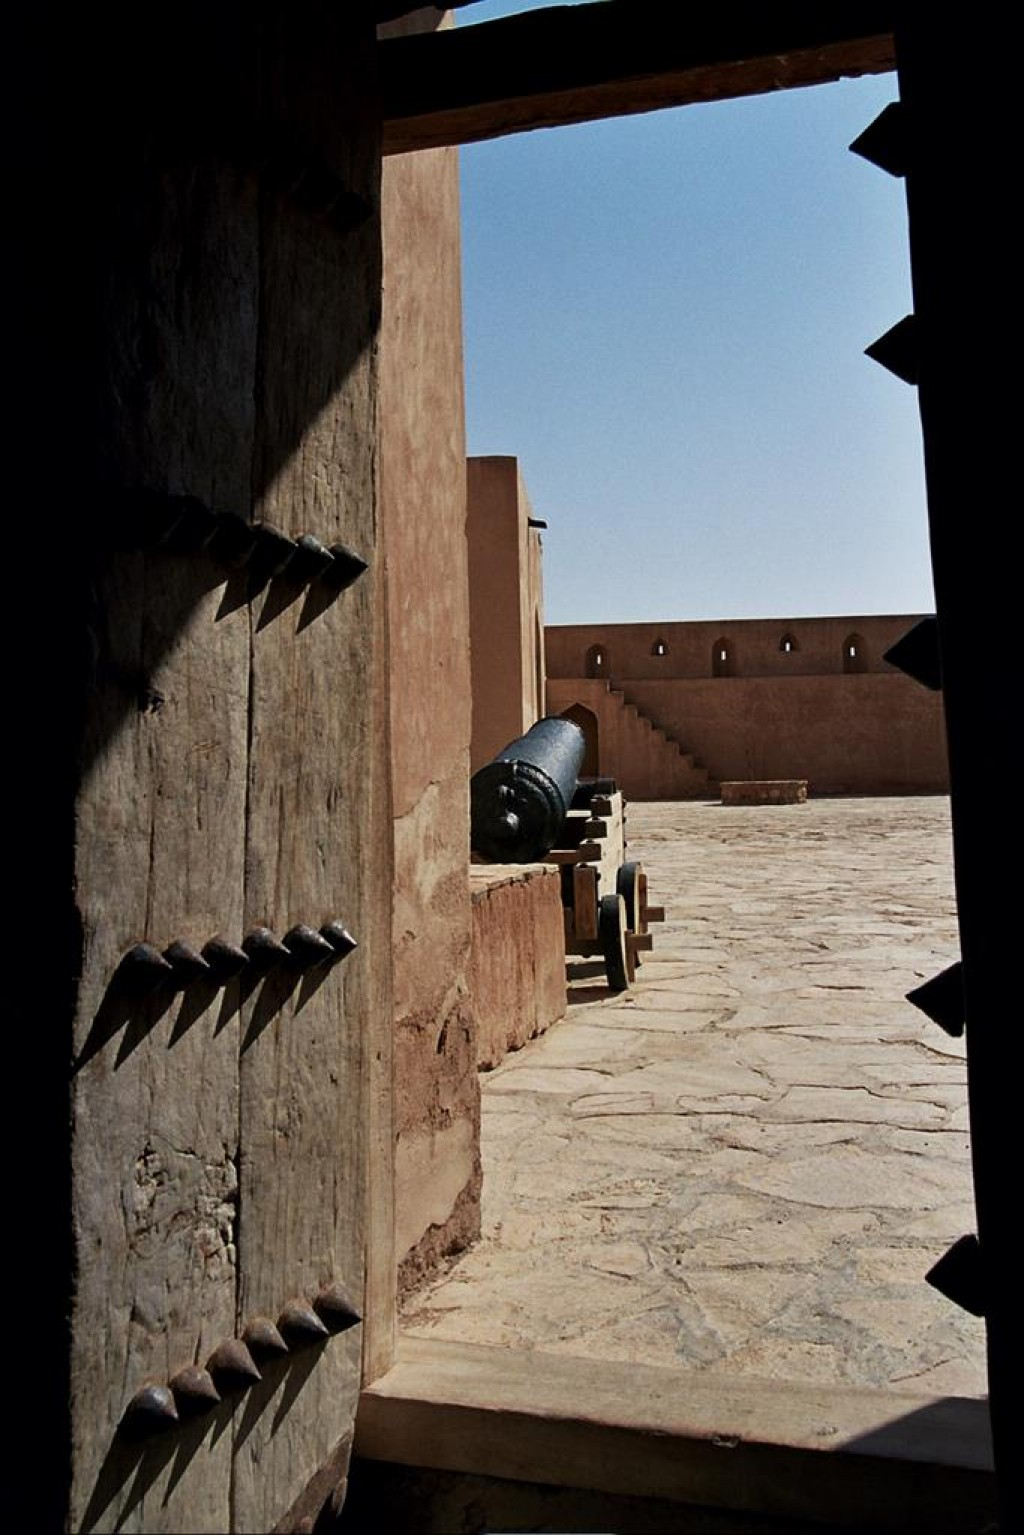 Jabrin Fort rises out of the middle of nowhere in the desert, and wows even the most jaded fort visitor.